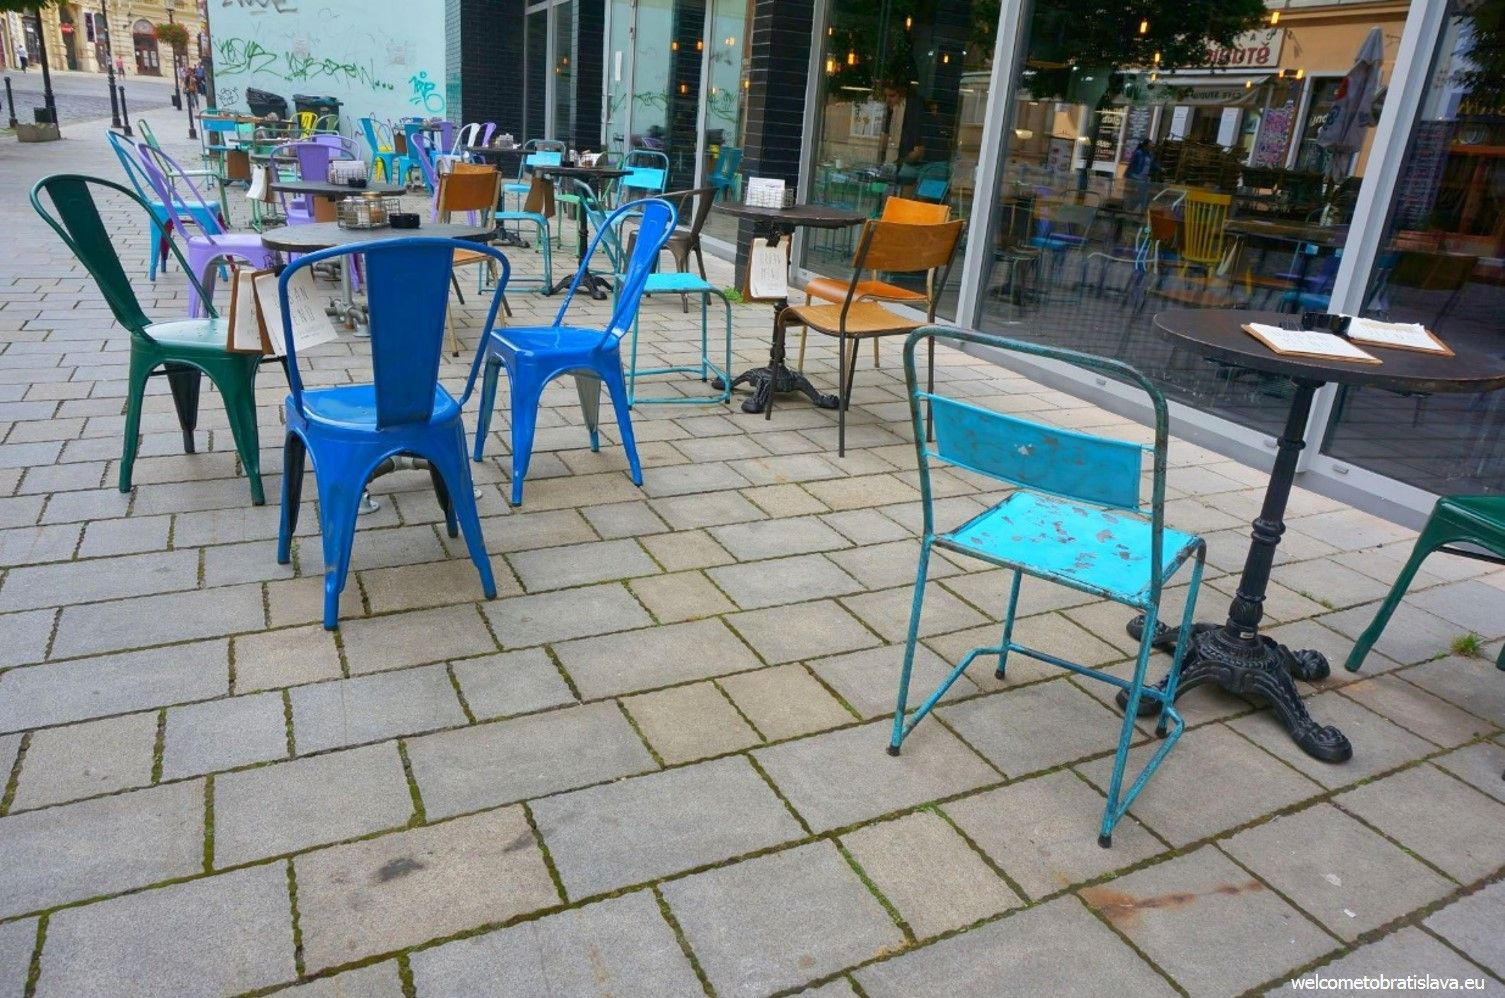 If you look for Urban House, search for the colorful retro chairs